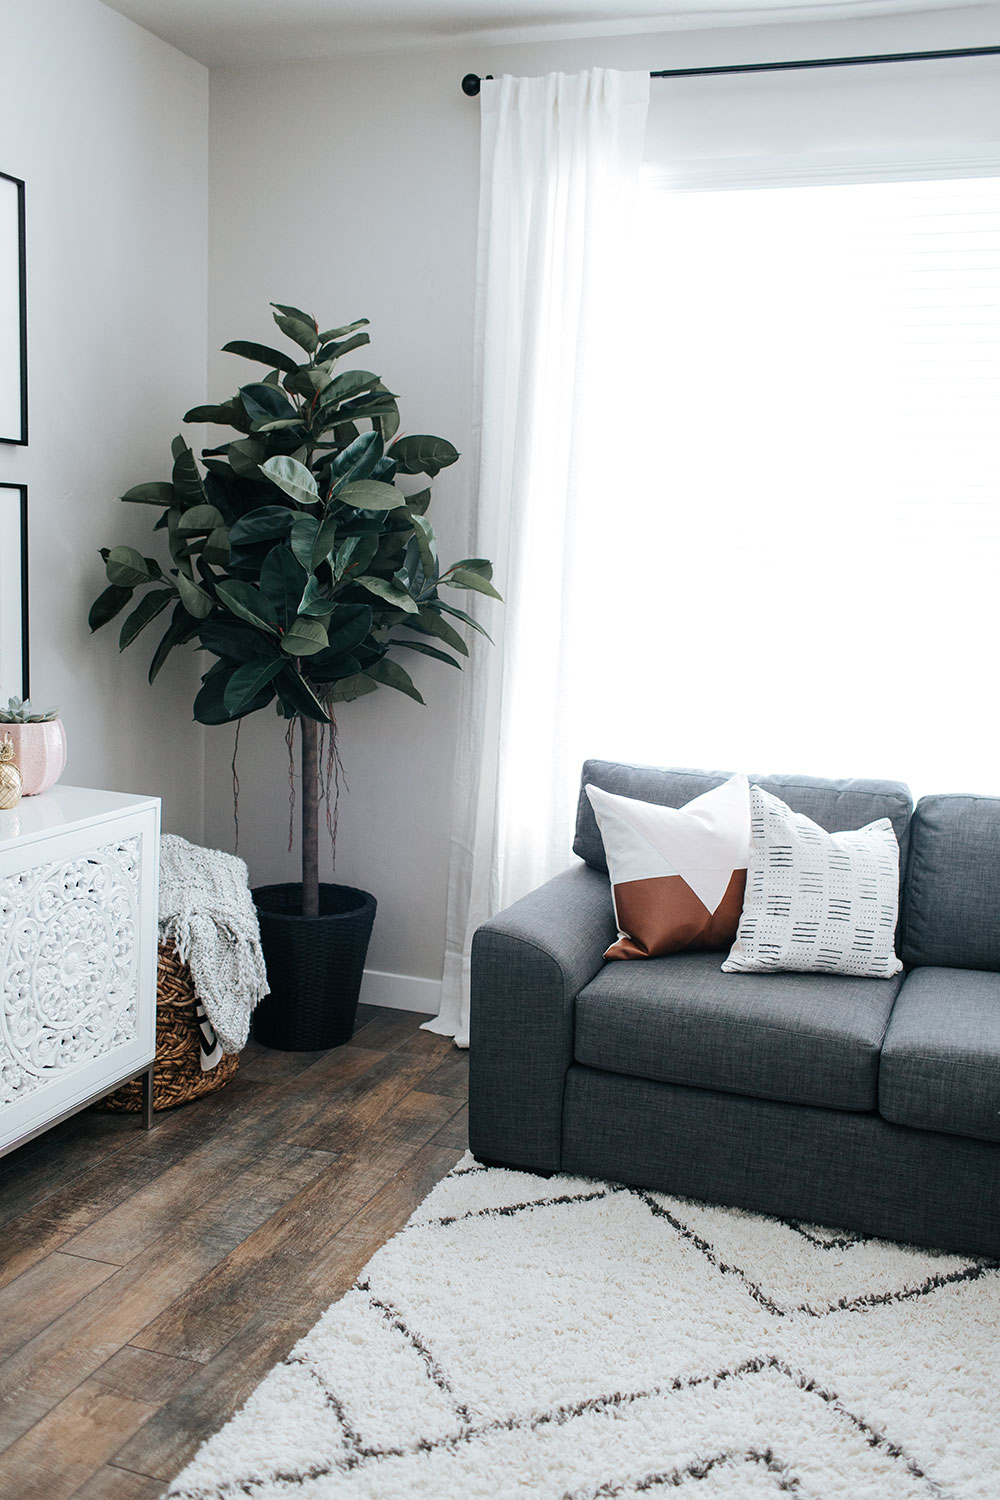 How to design a small living room   living room decor ideas   gallery wall inspiration   minted art styling service   Little Miss Fearless